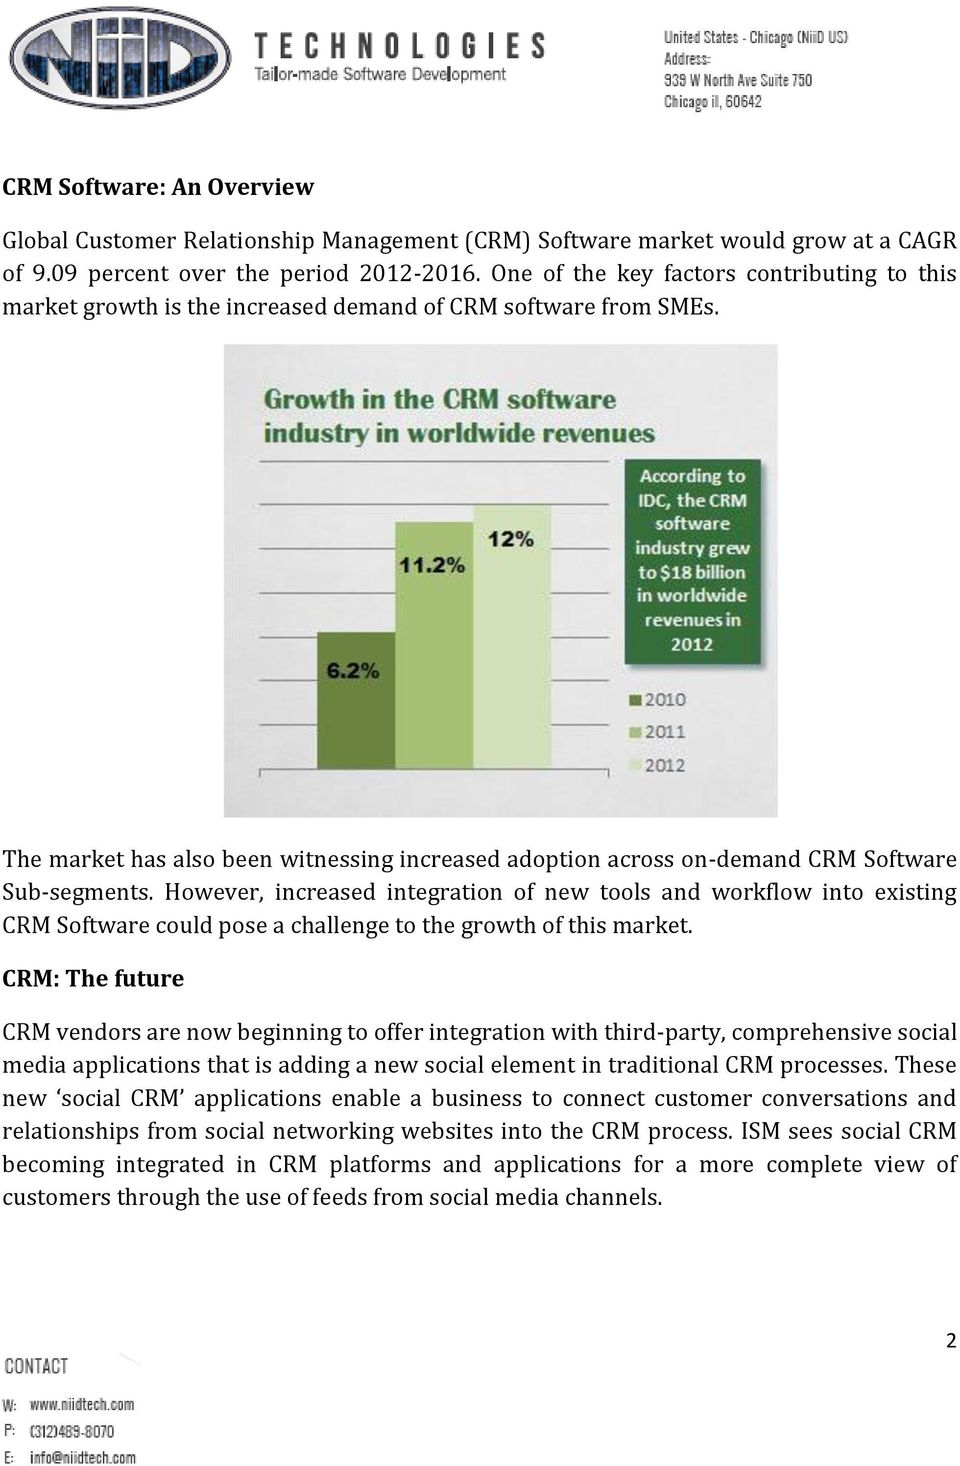 The market has also been witnessing increased adoption across on-demand CRM Software Sub-segments.